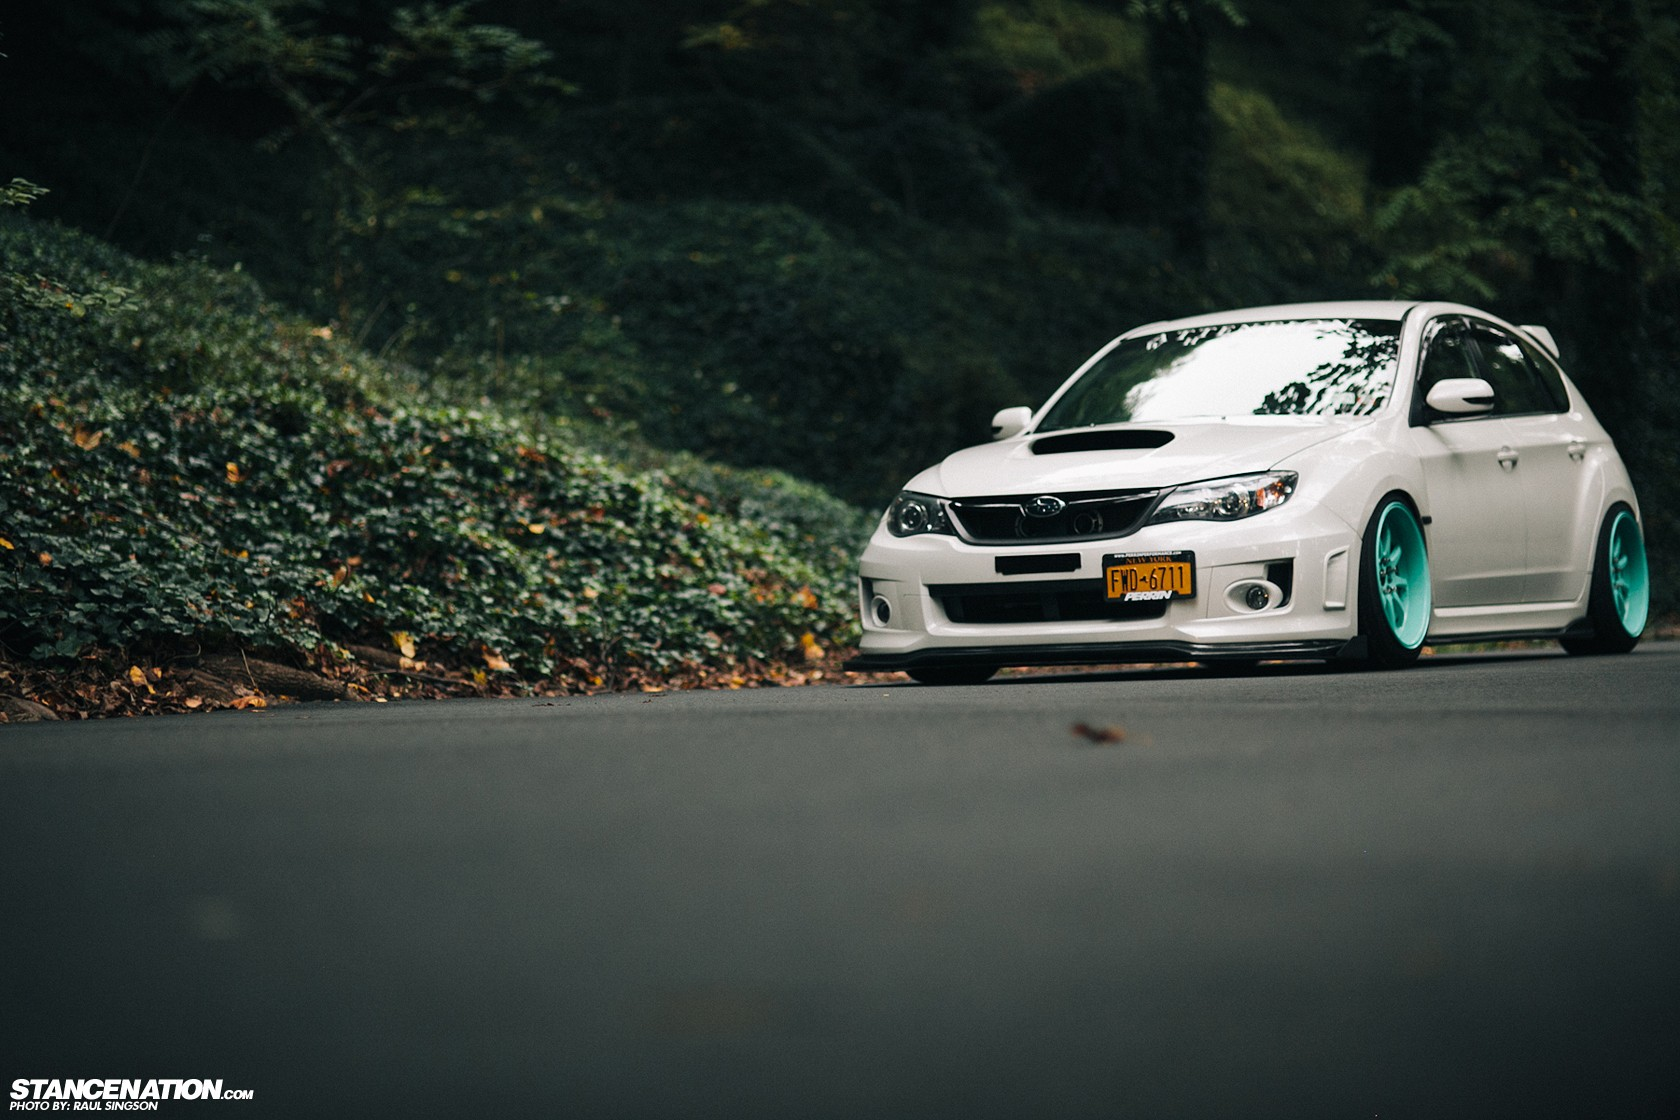 Retro Car Home Wallpaper Subaru Subaru Impreza Stancenation Stance Wallpapers Hd